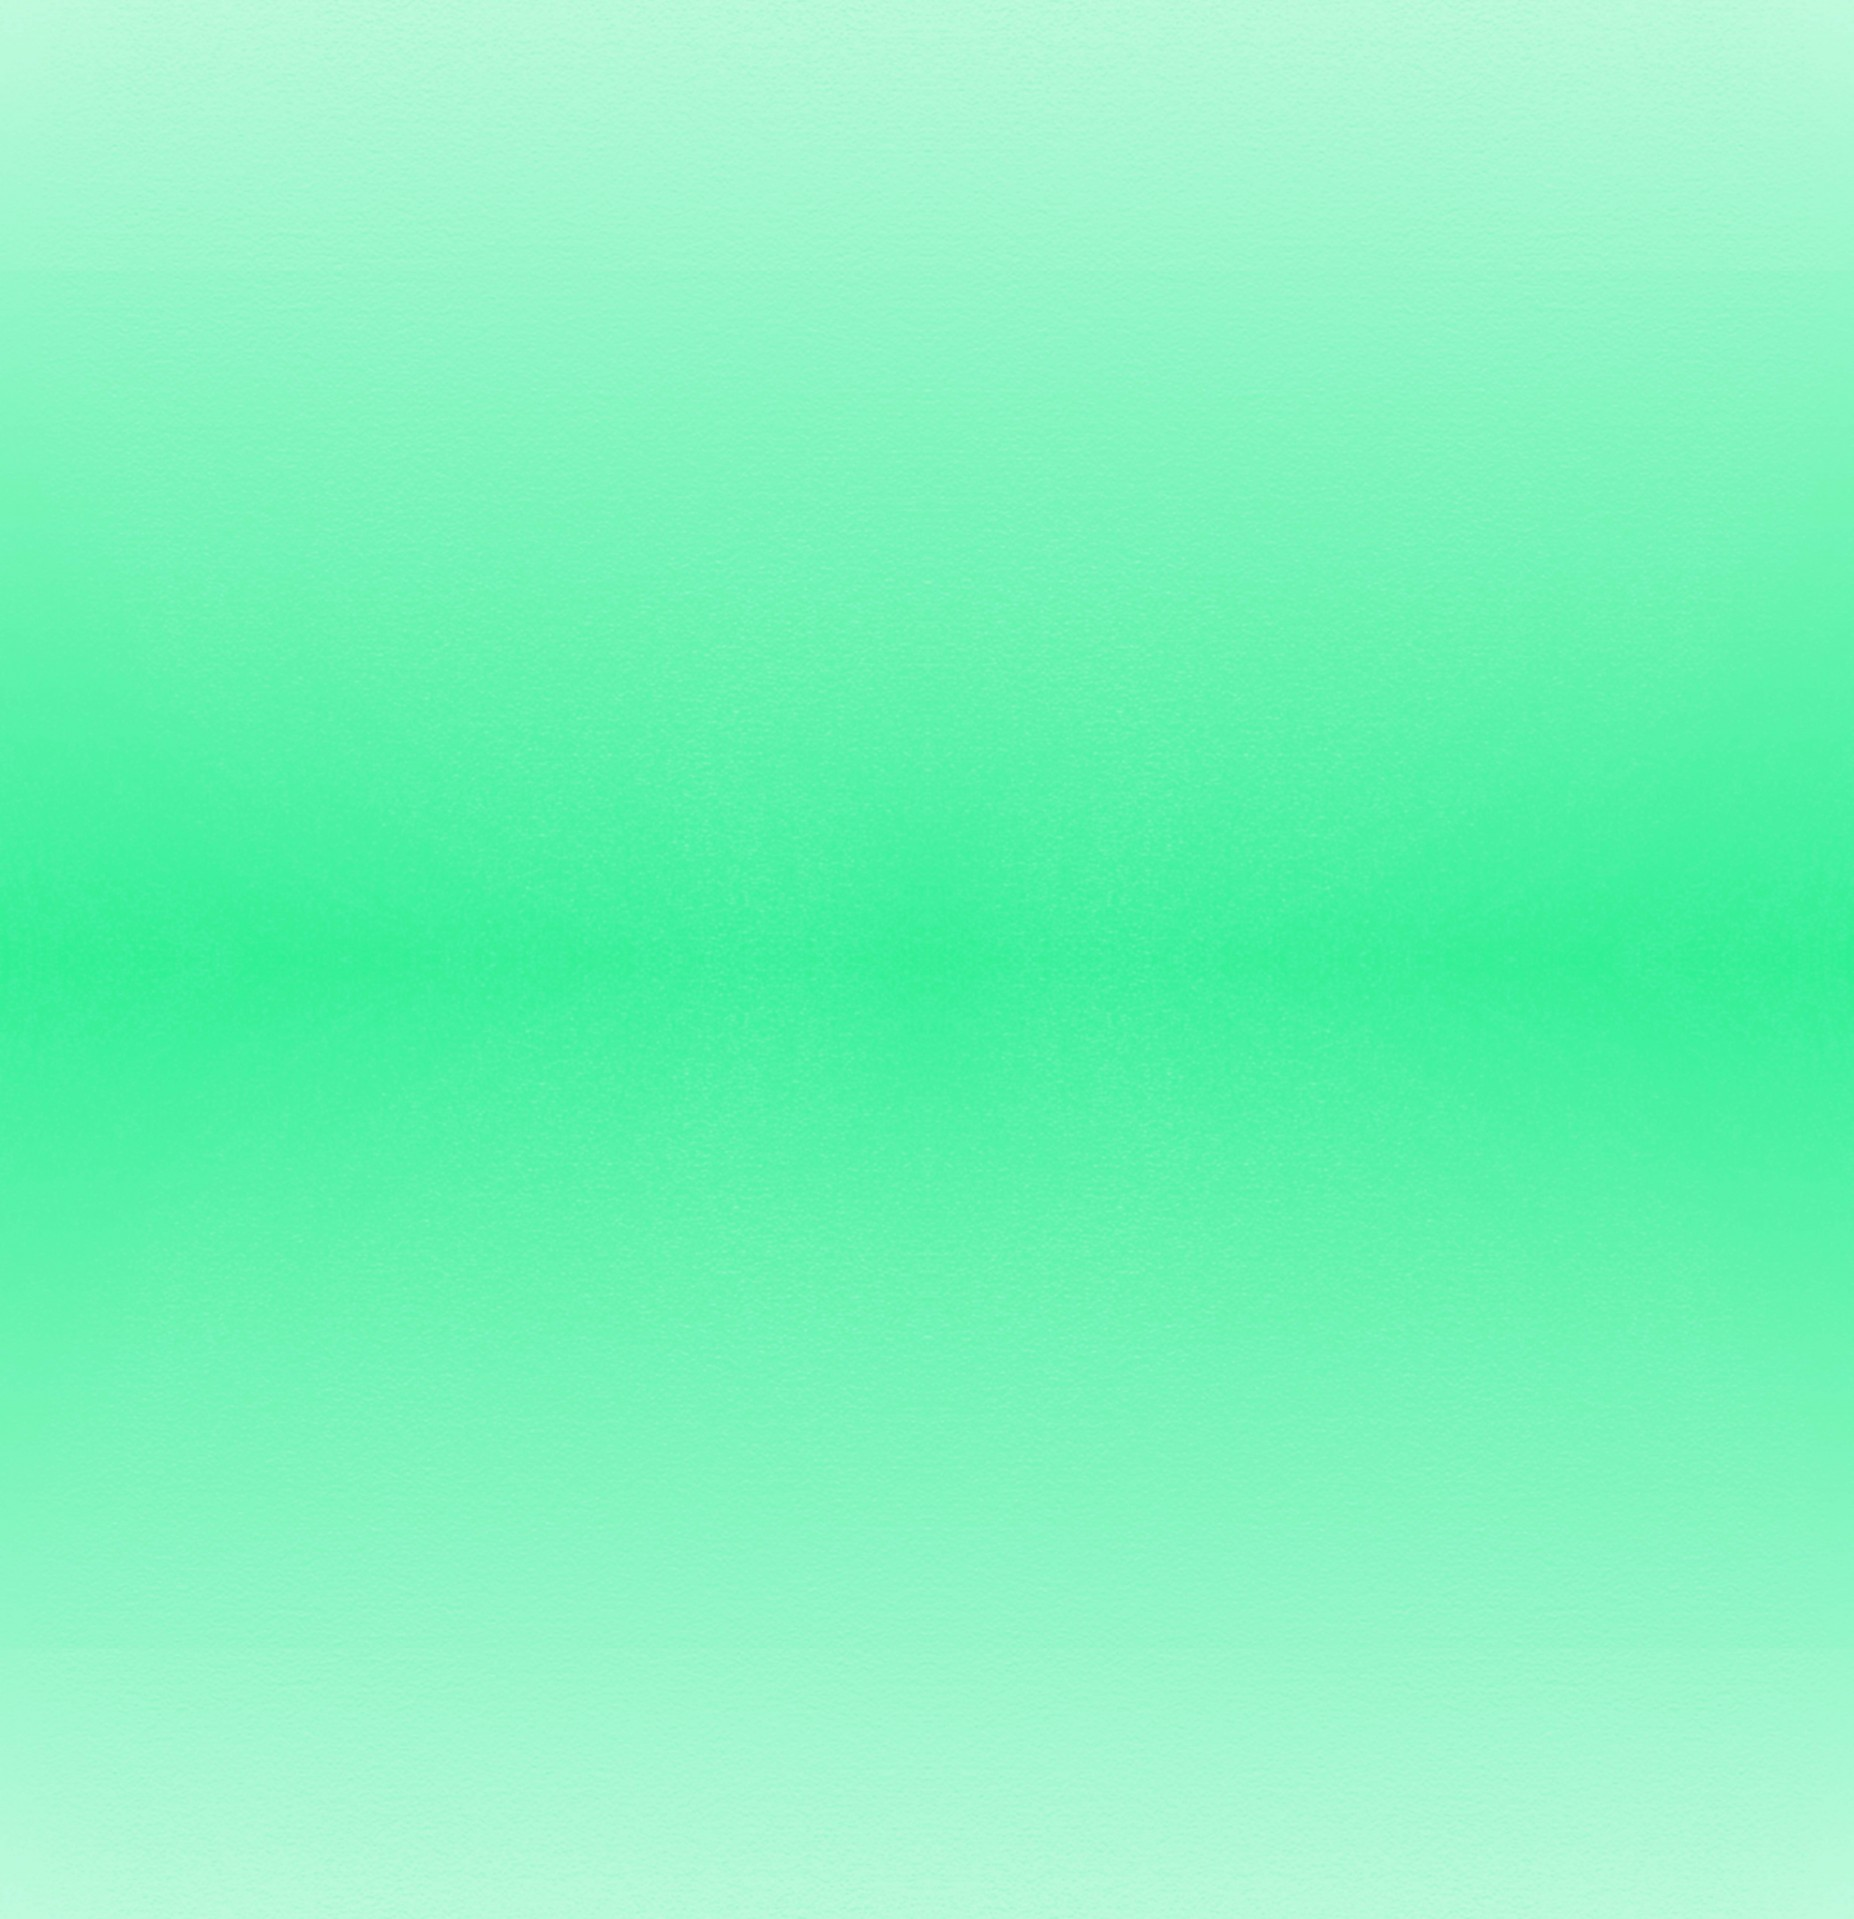 Mint Green Diffused Background Free Stock Photo - Public Domain Pictures